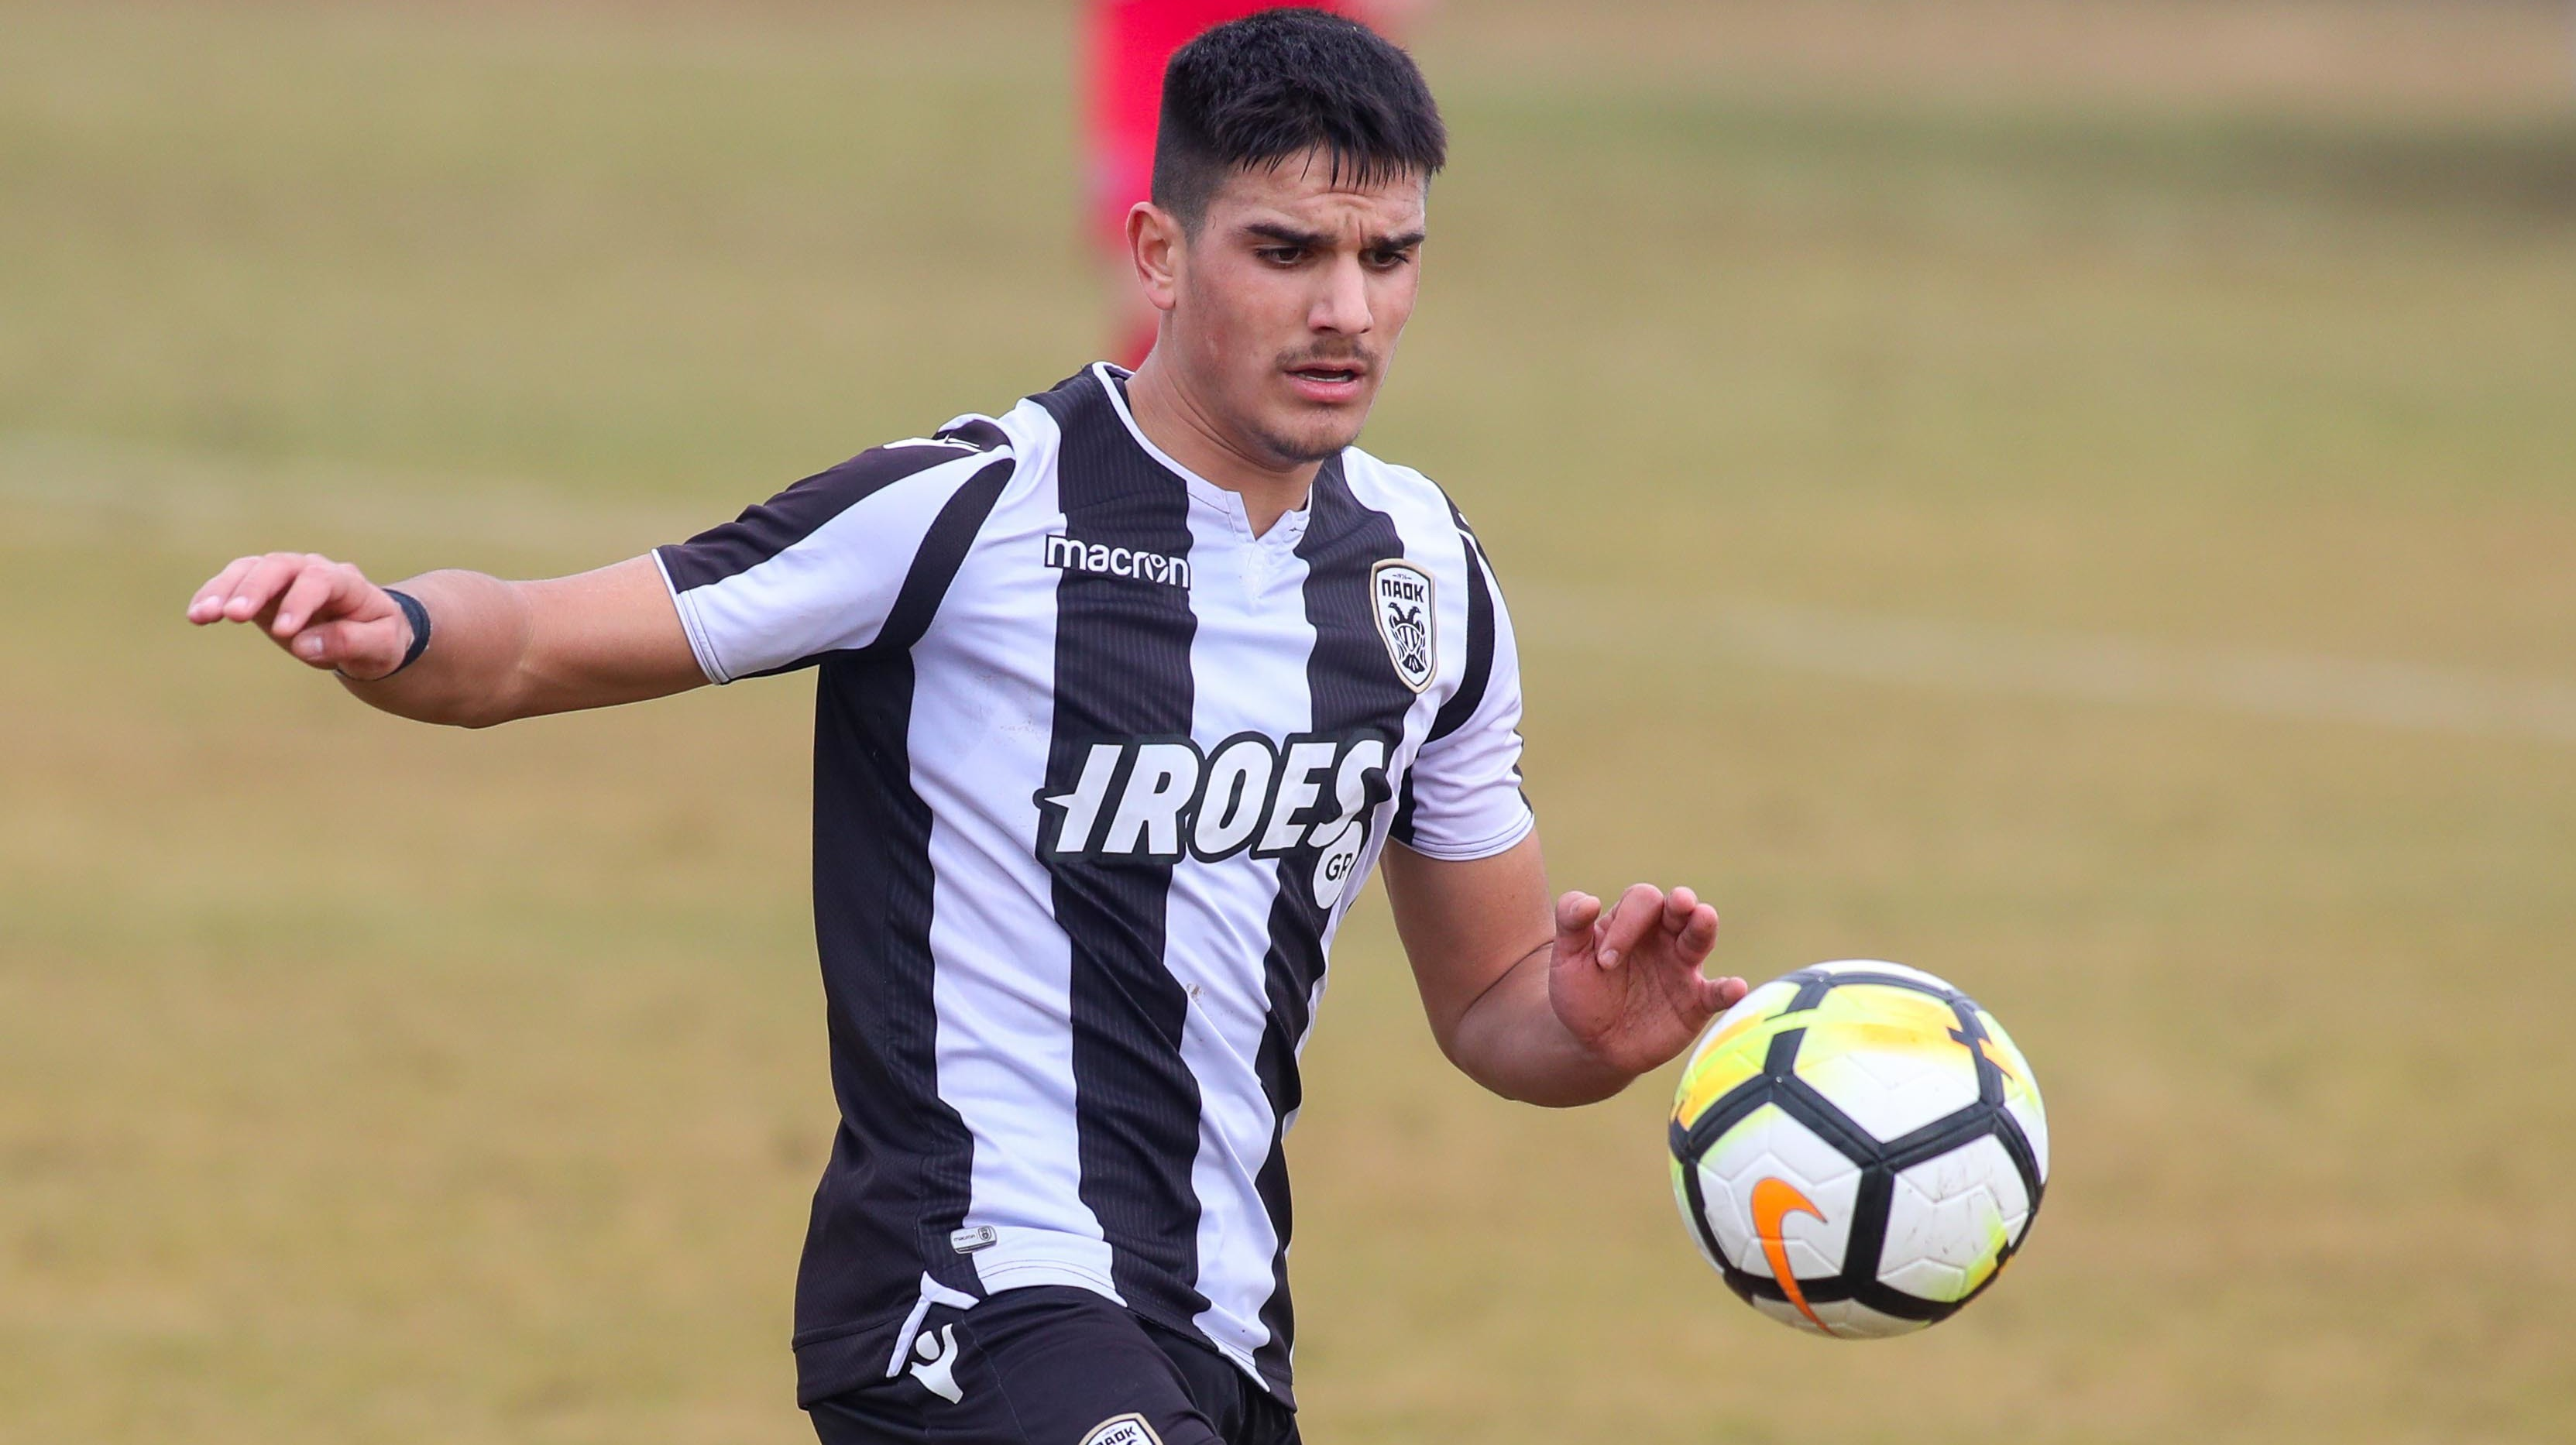 PAOK U19 – Panionios U19: Highlights